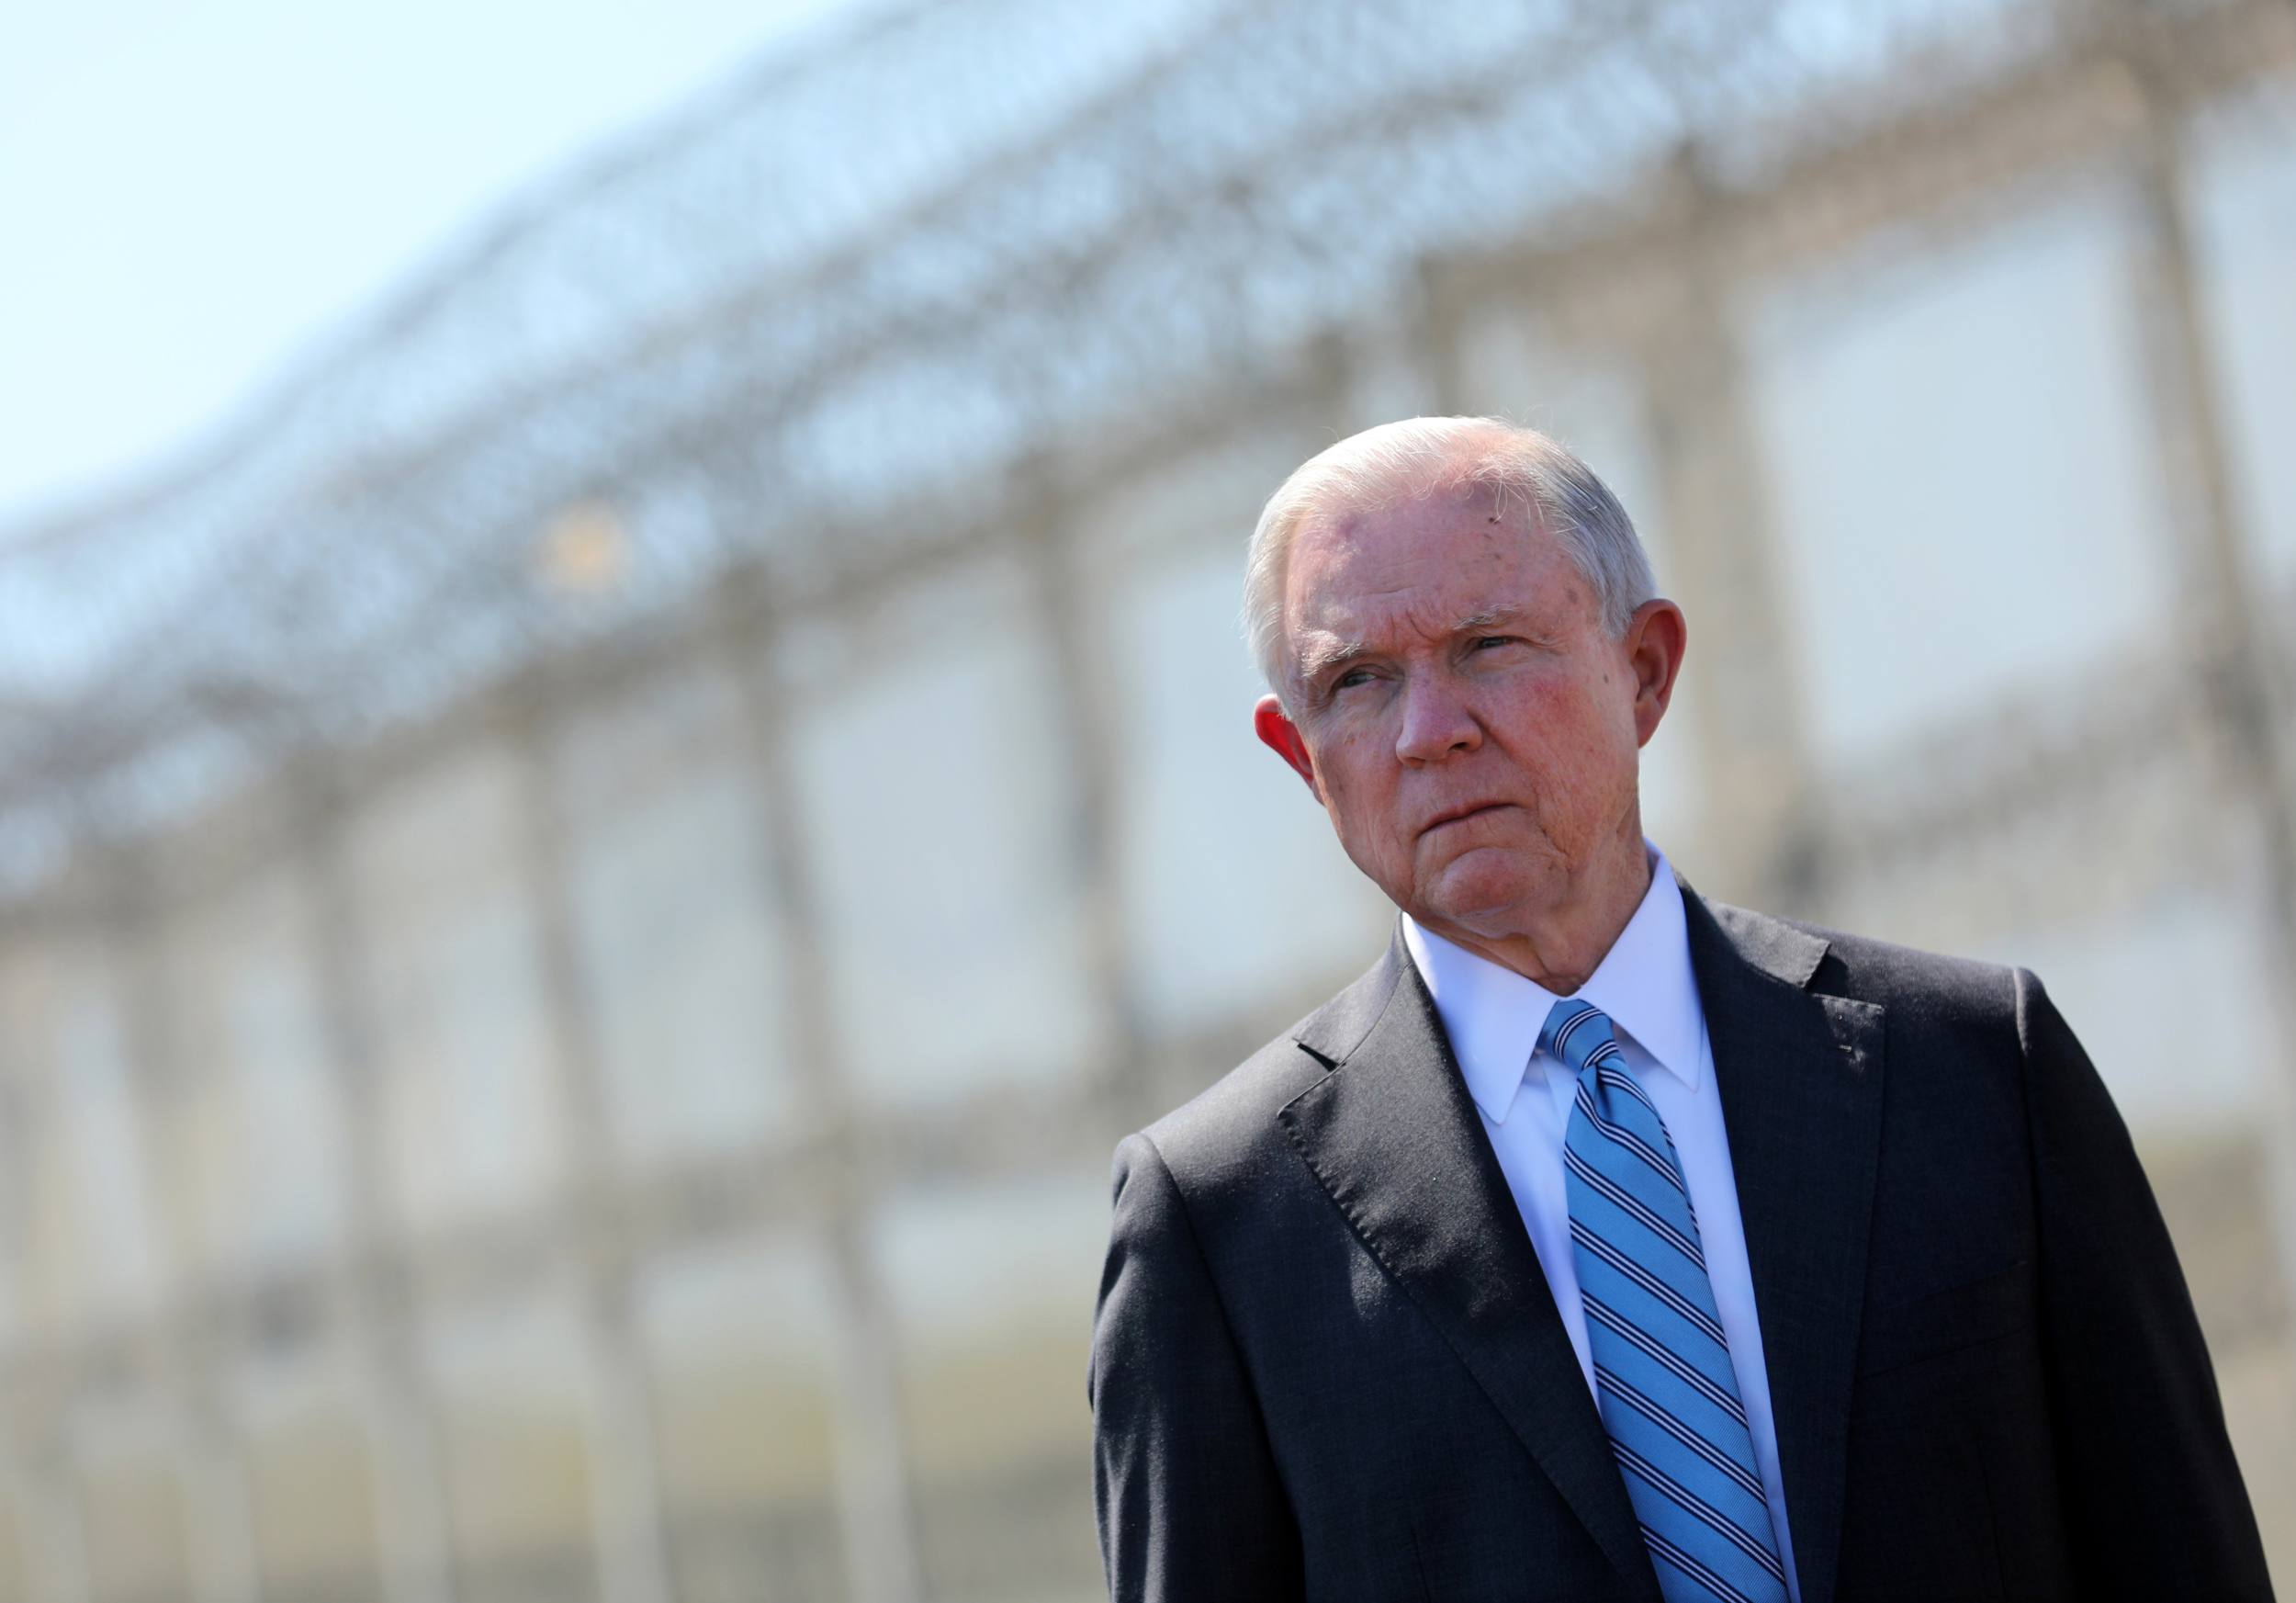 640 United Methodist clergy, members file complaint against Sessions